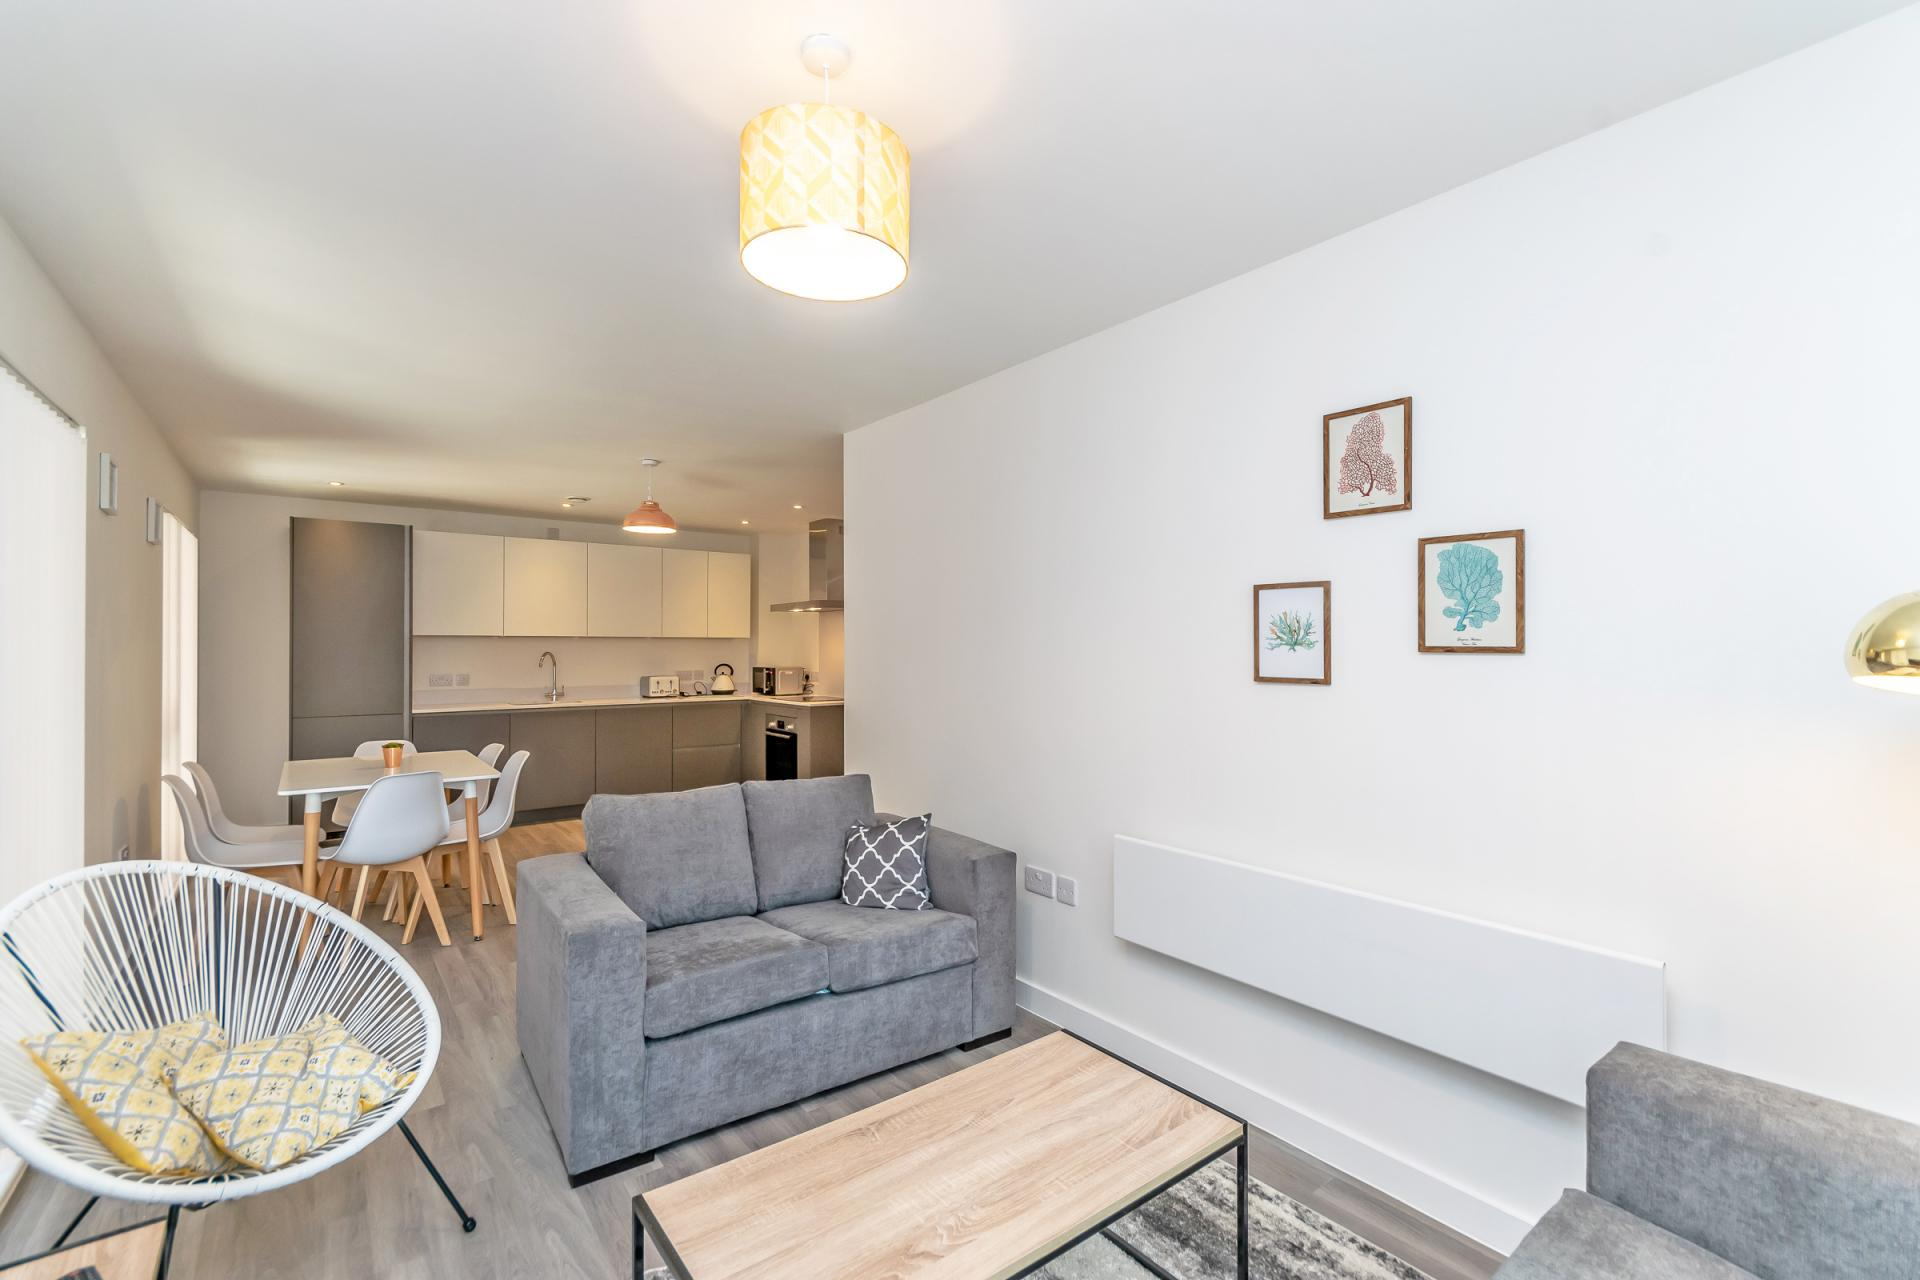 Sofa at Halo House Serviced Apartments, Green Quarter, Manchester - Citybase Apartments